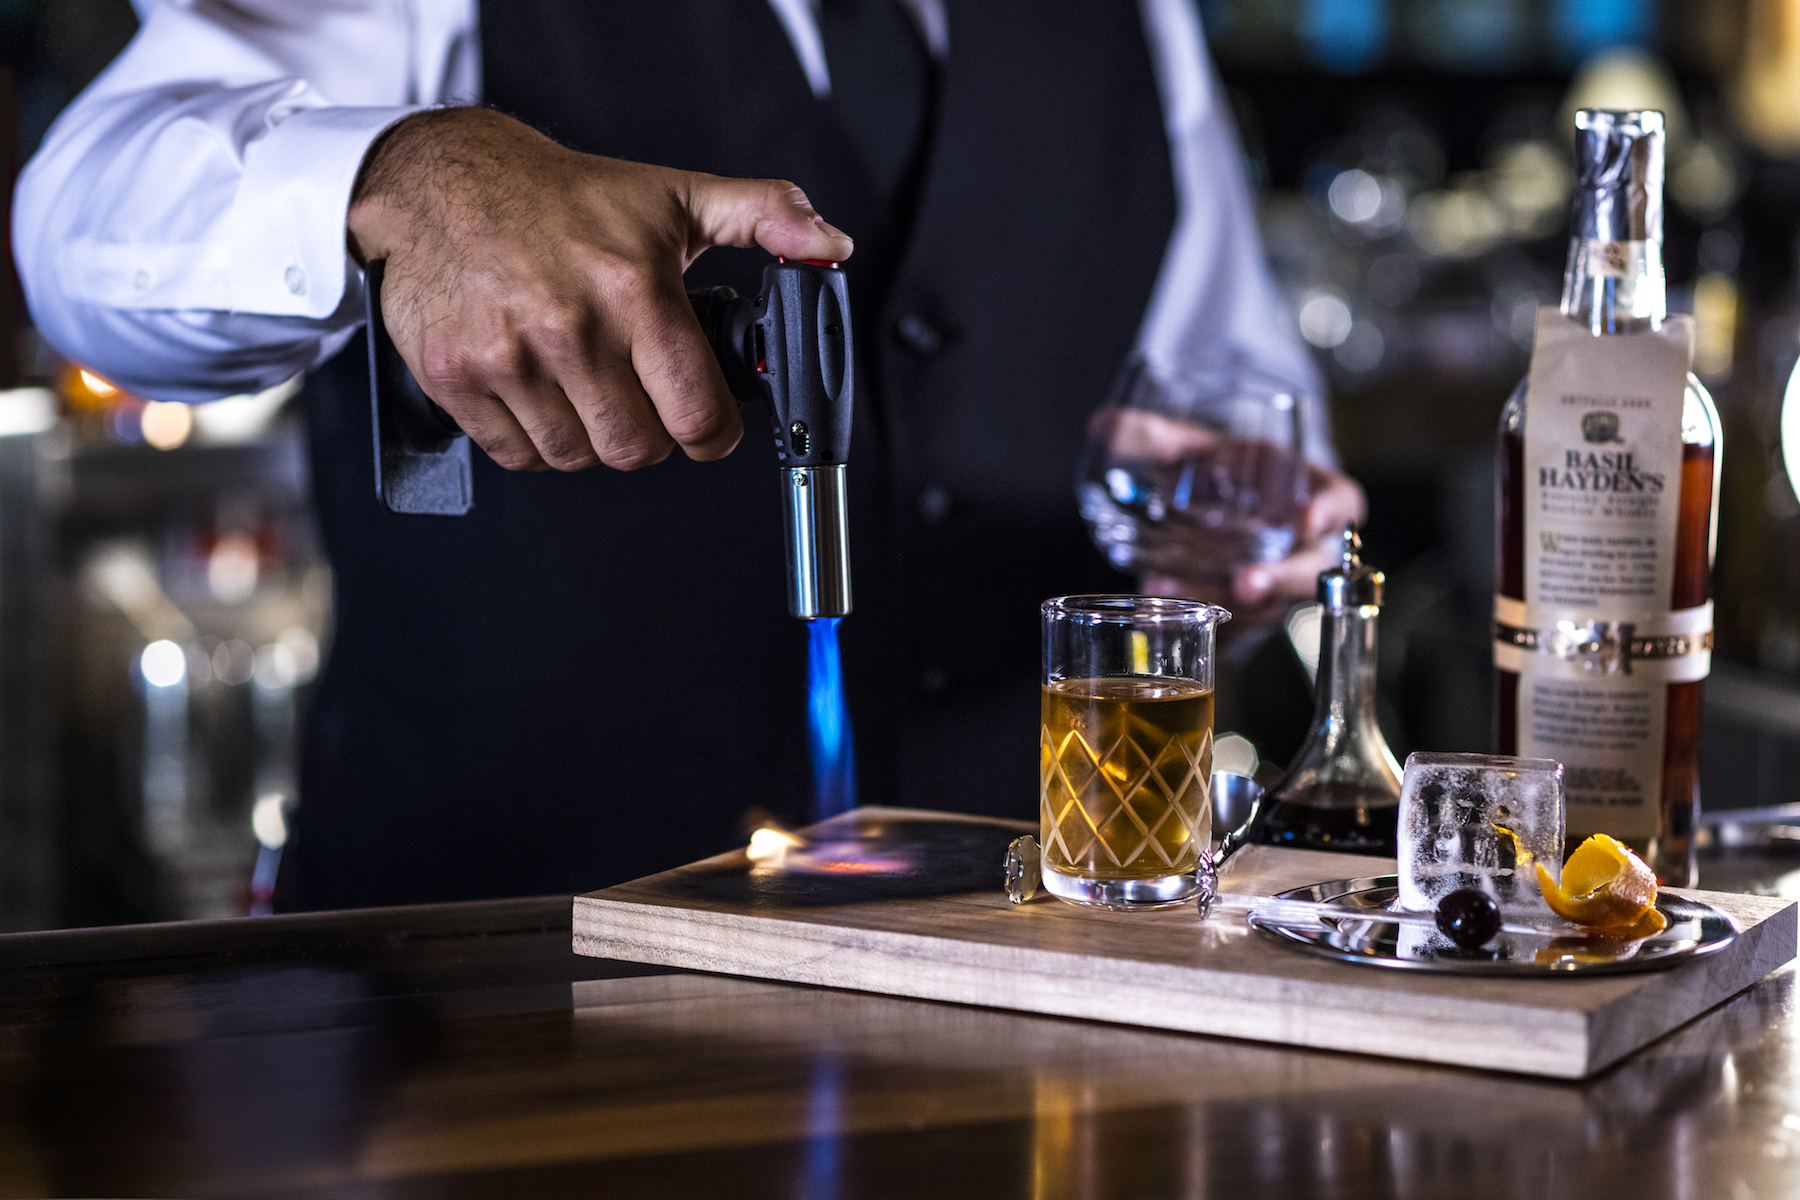 And Live Nightly Jazz, Eddie V's Is Now Adding A Reimagined,  Prohibitioninspired Cocktail Lineup Apply For Welfare